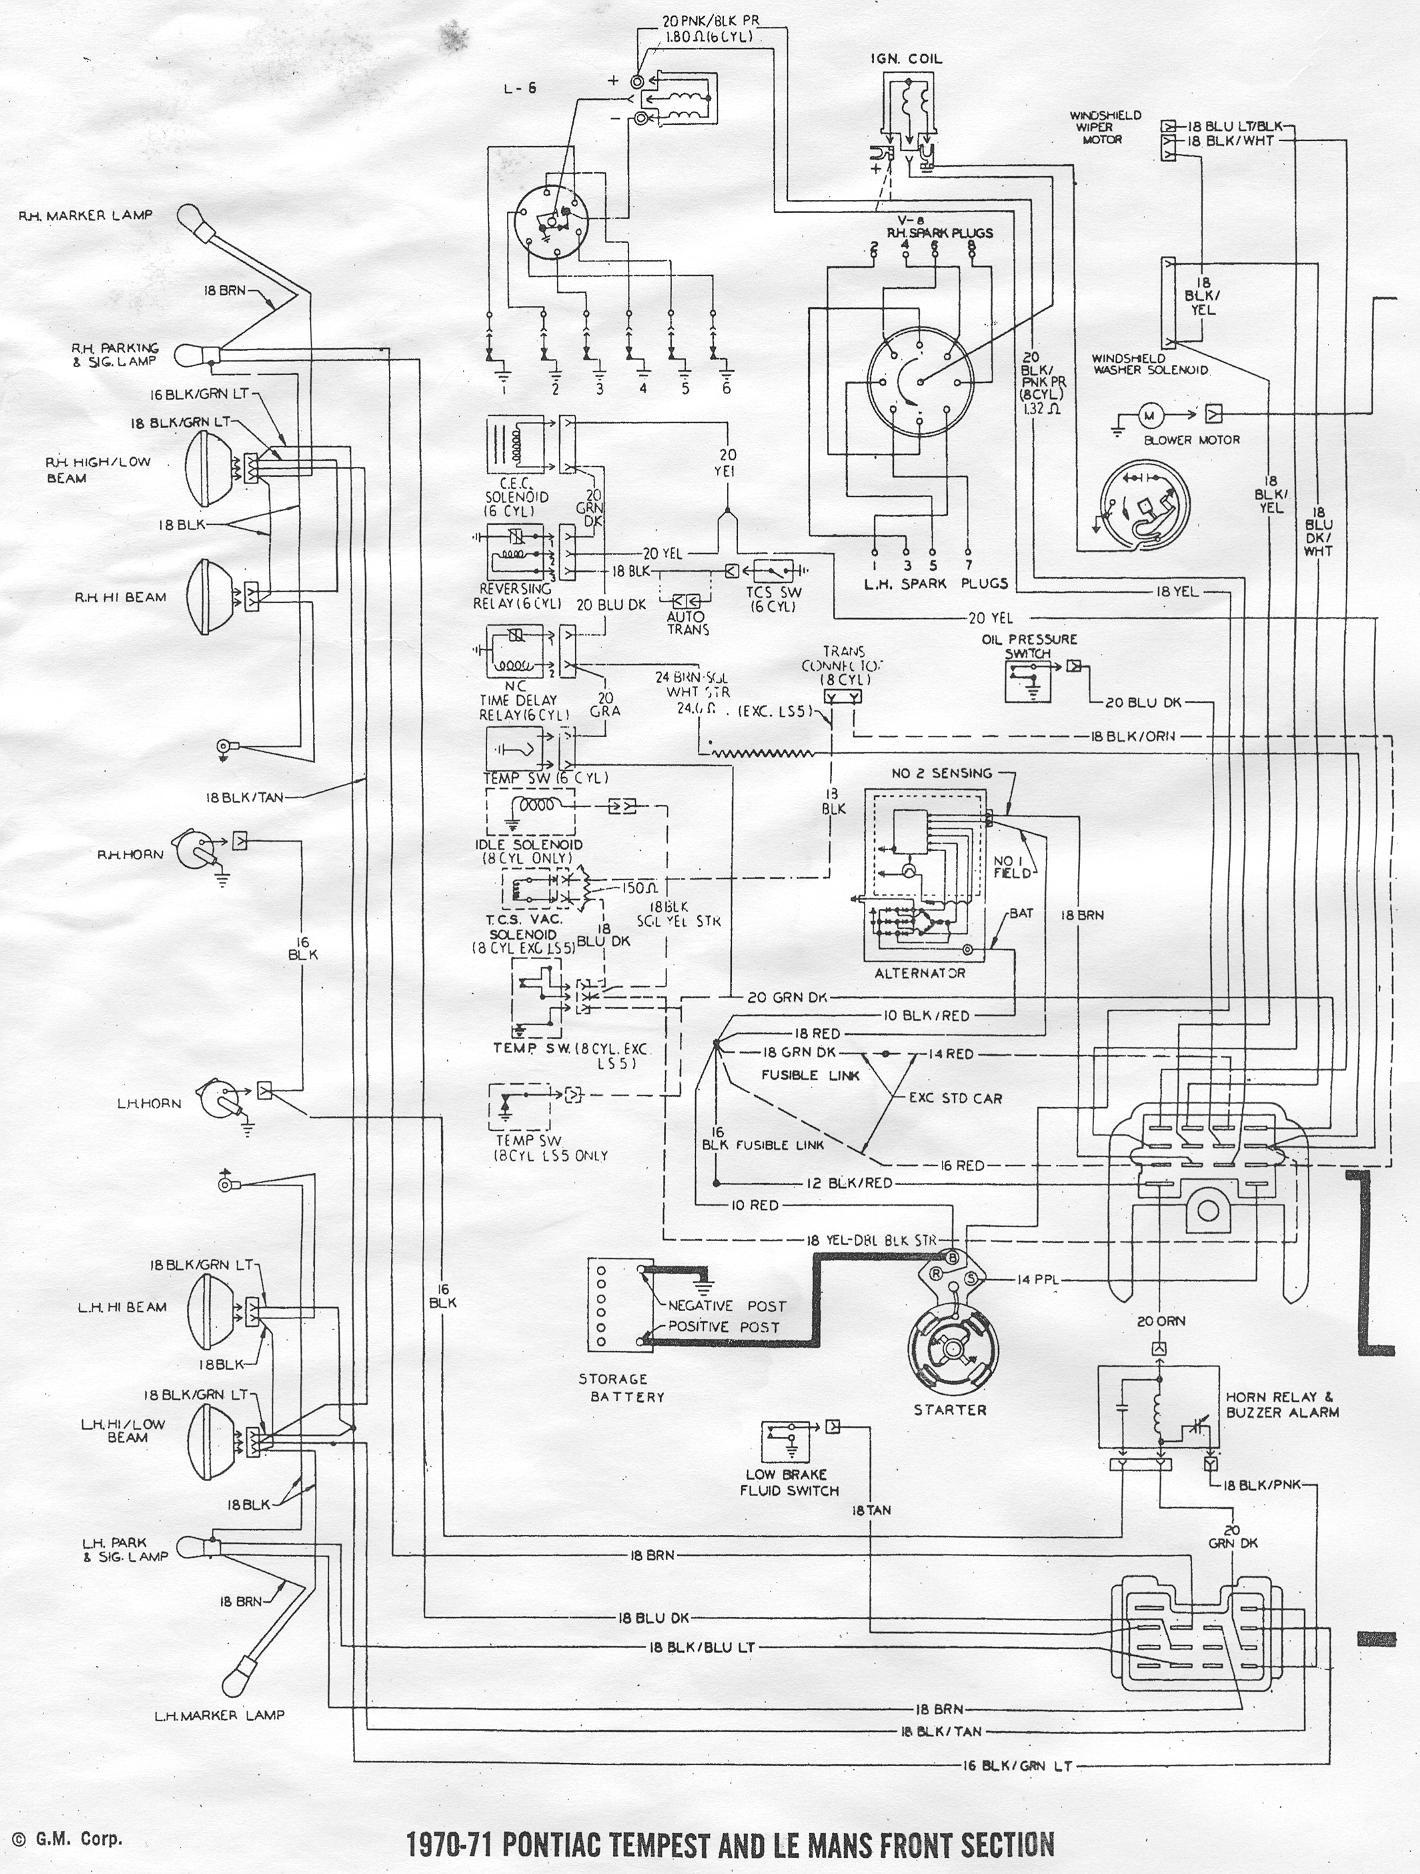 gto wiring diagram scans pontiac gto forum 1975 tempest gto lemans attached thumbnails click image for larger version 70 71 gto page1